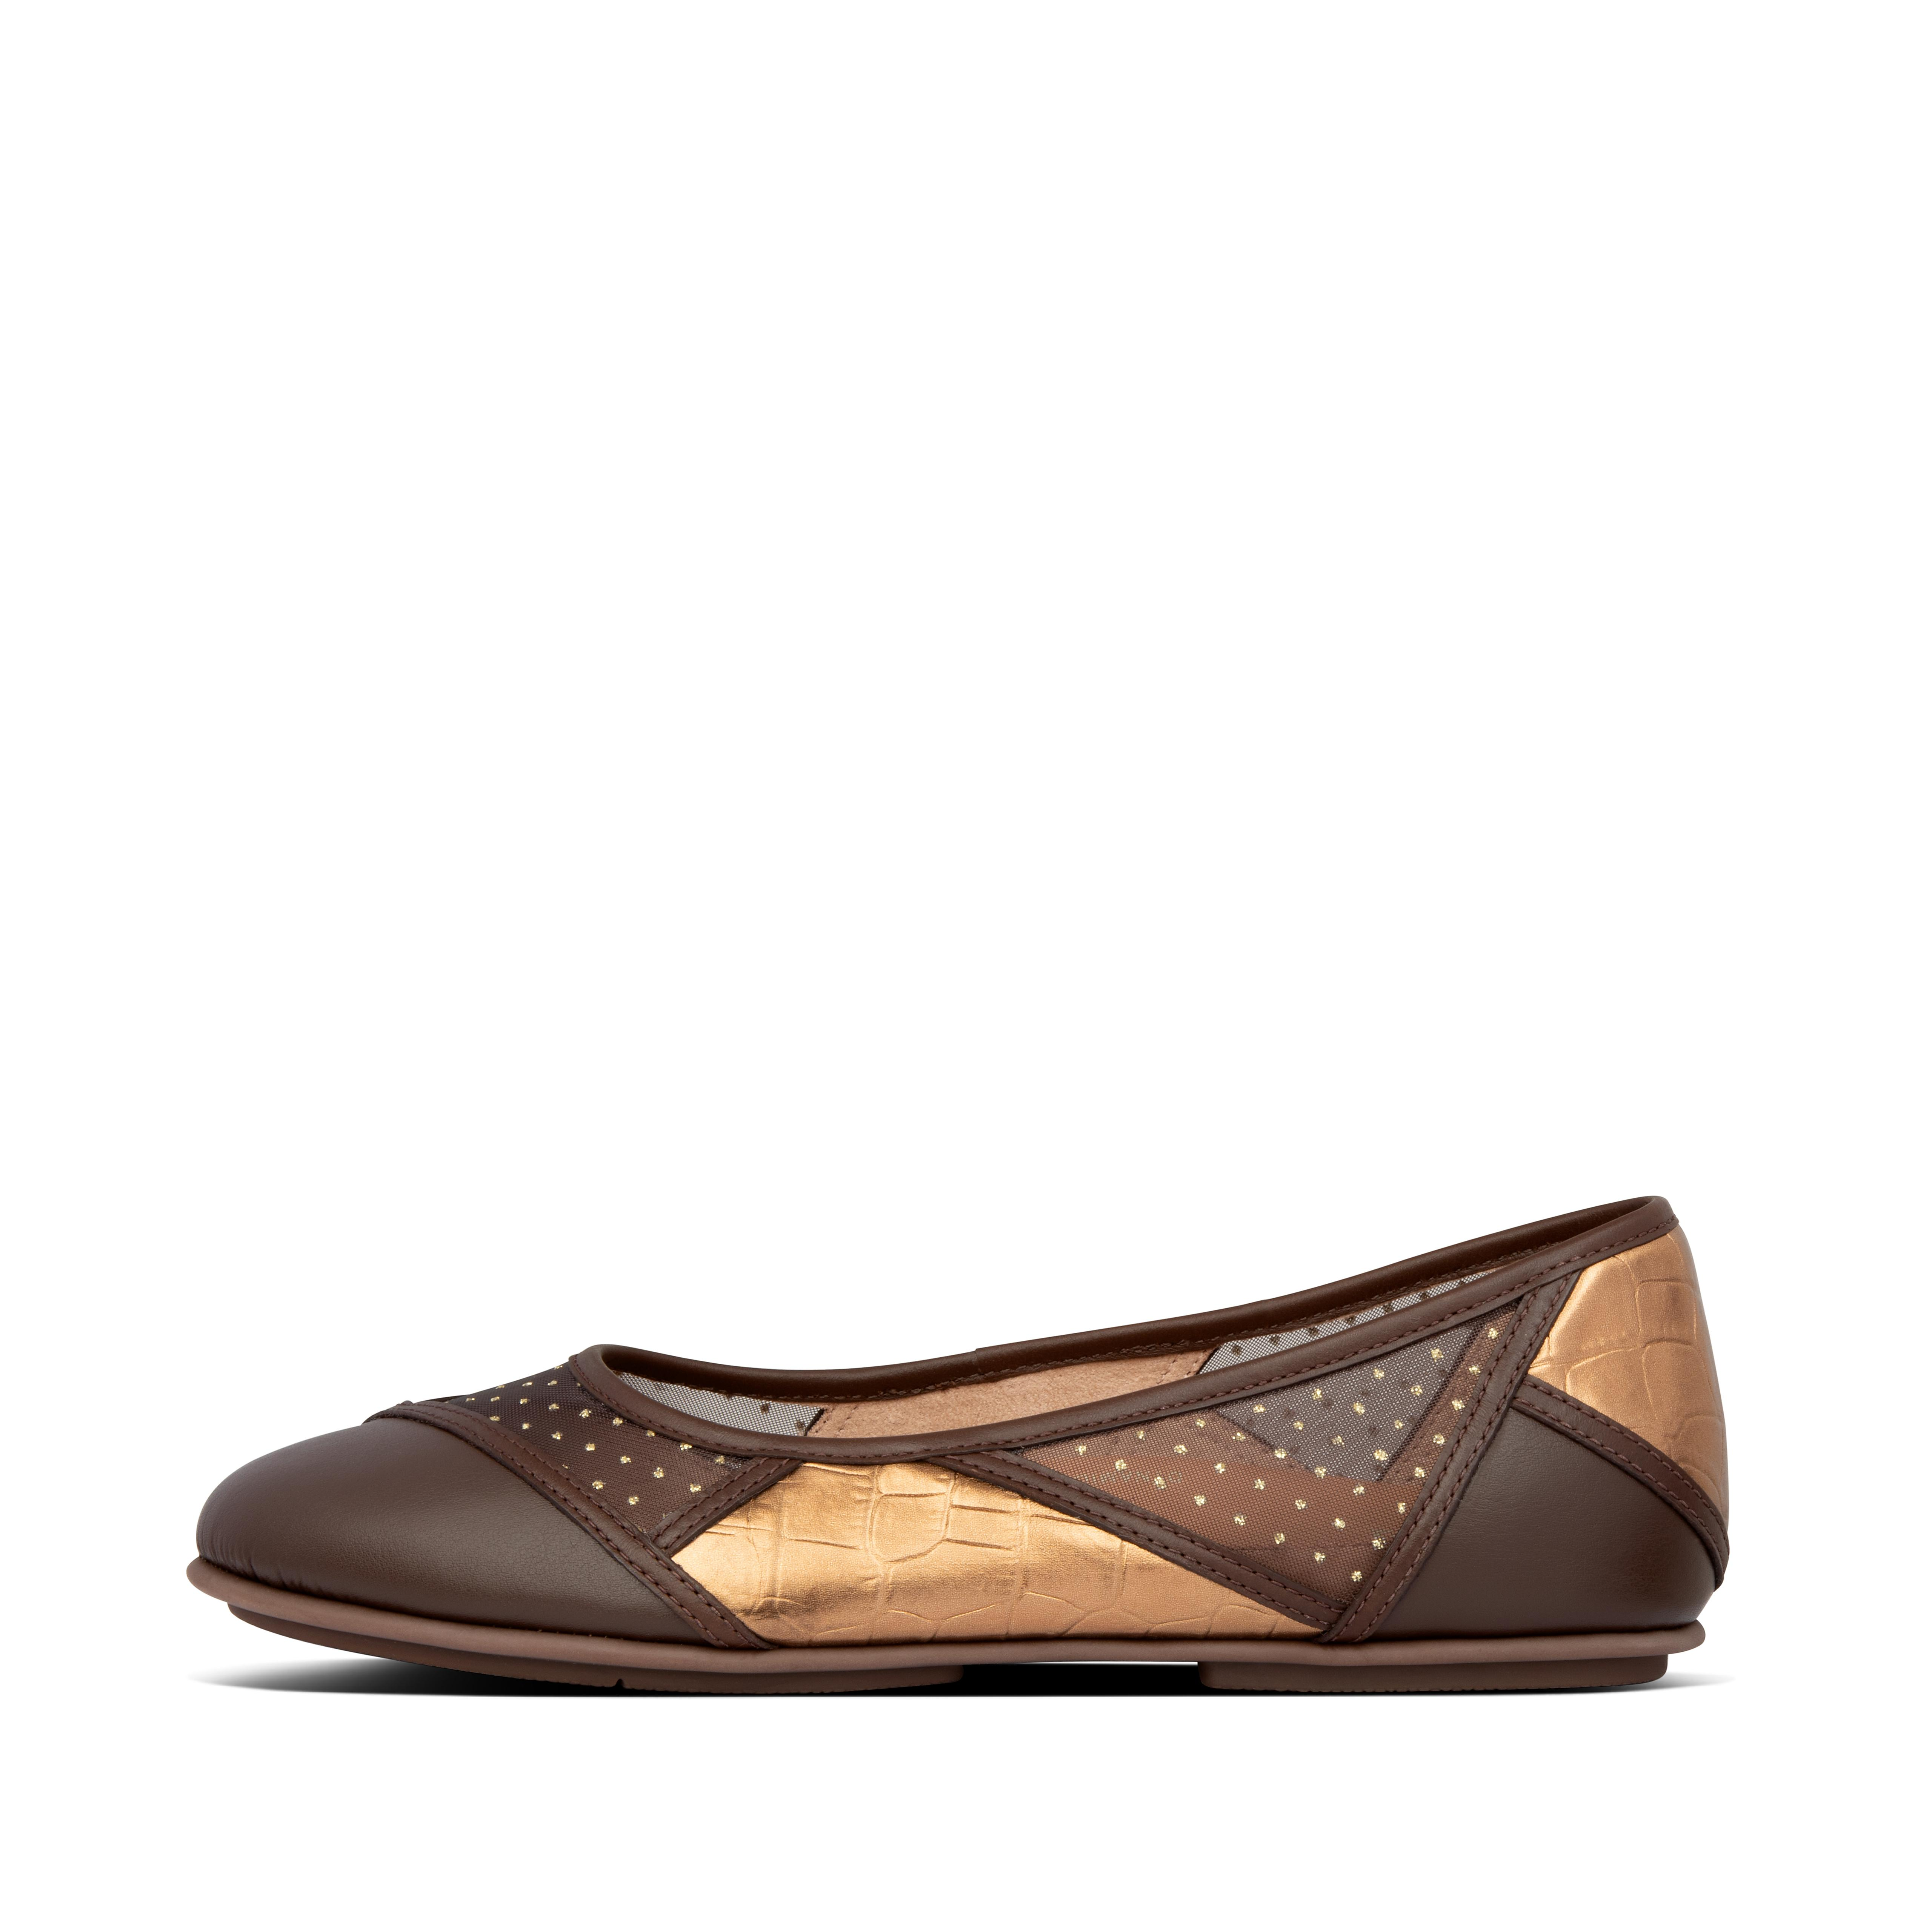 These ballet flats will have you in a whirl. Looking like classic ballet flats but feeling like sneakers - you\\\'ll wonder just where we fit our comfort tech. Think genius design: sleek featherlight midsoles, anatomically shaped to support your feet, with our high-rebound Dynamicush™ cushioning hidden in the forefoot. Here in a stunning 70s-inspired patchwork design, mixing smooth leather, shiny metallic mock croc and glitter-dot mesh.